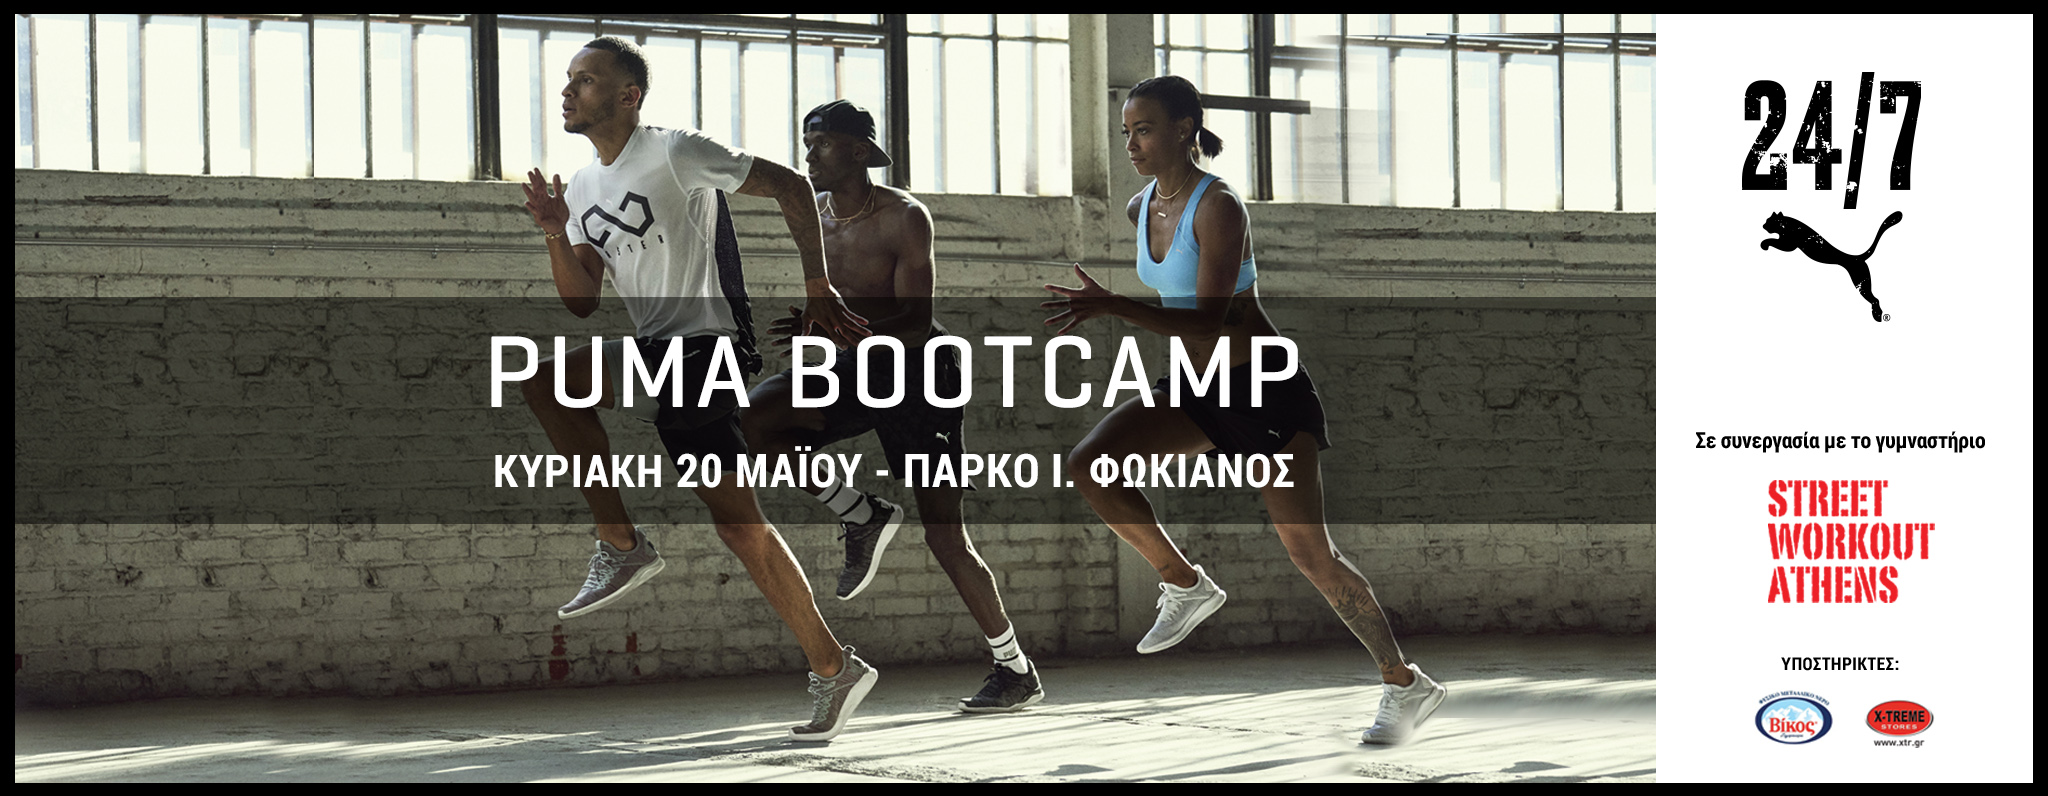 Puma bootcamp in Athens